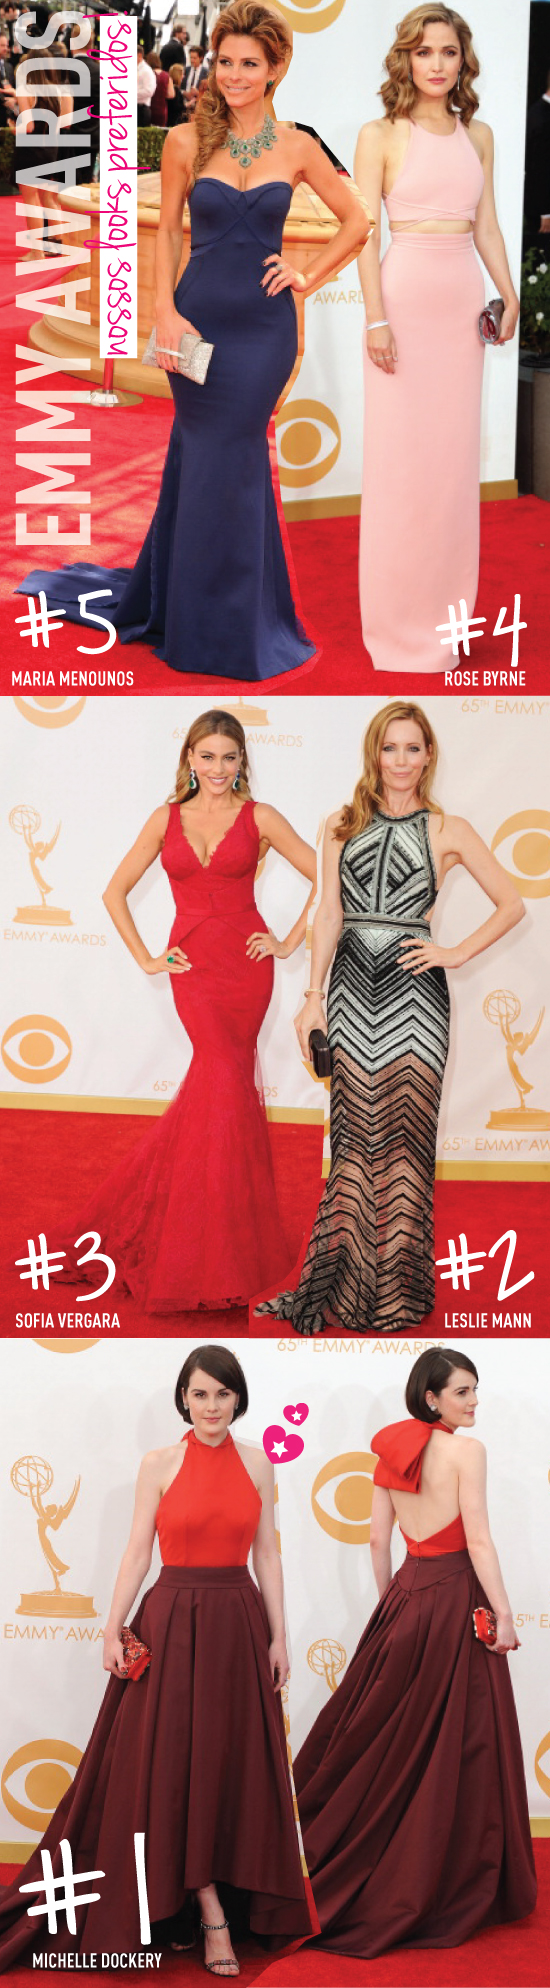 emmy-awards-looks-2013-red-carpet